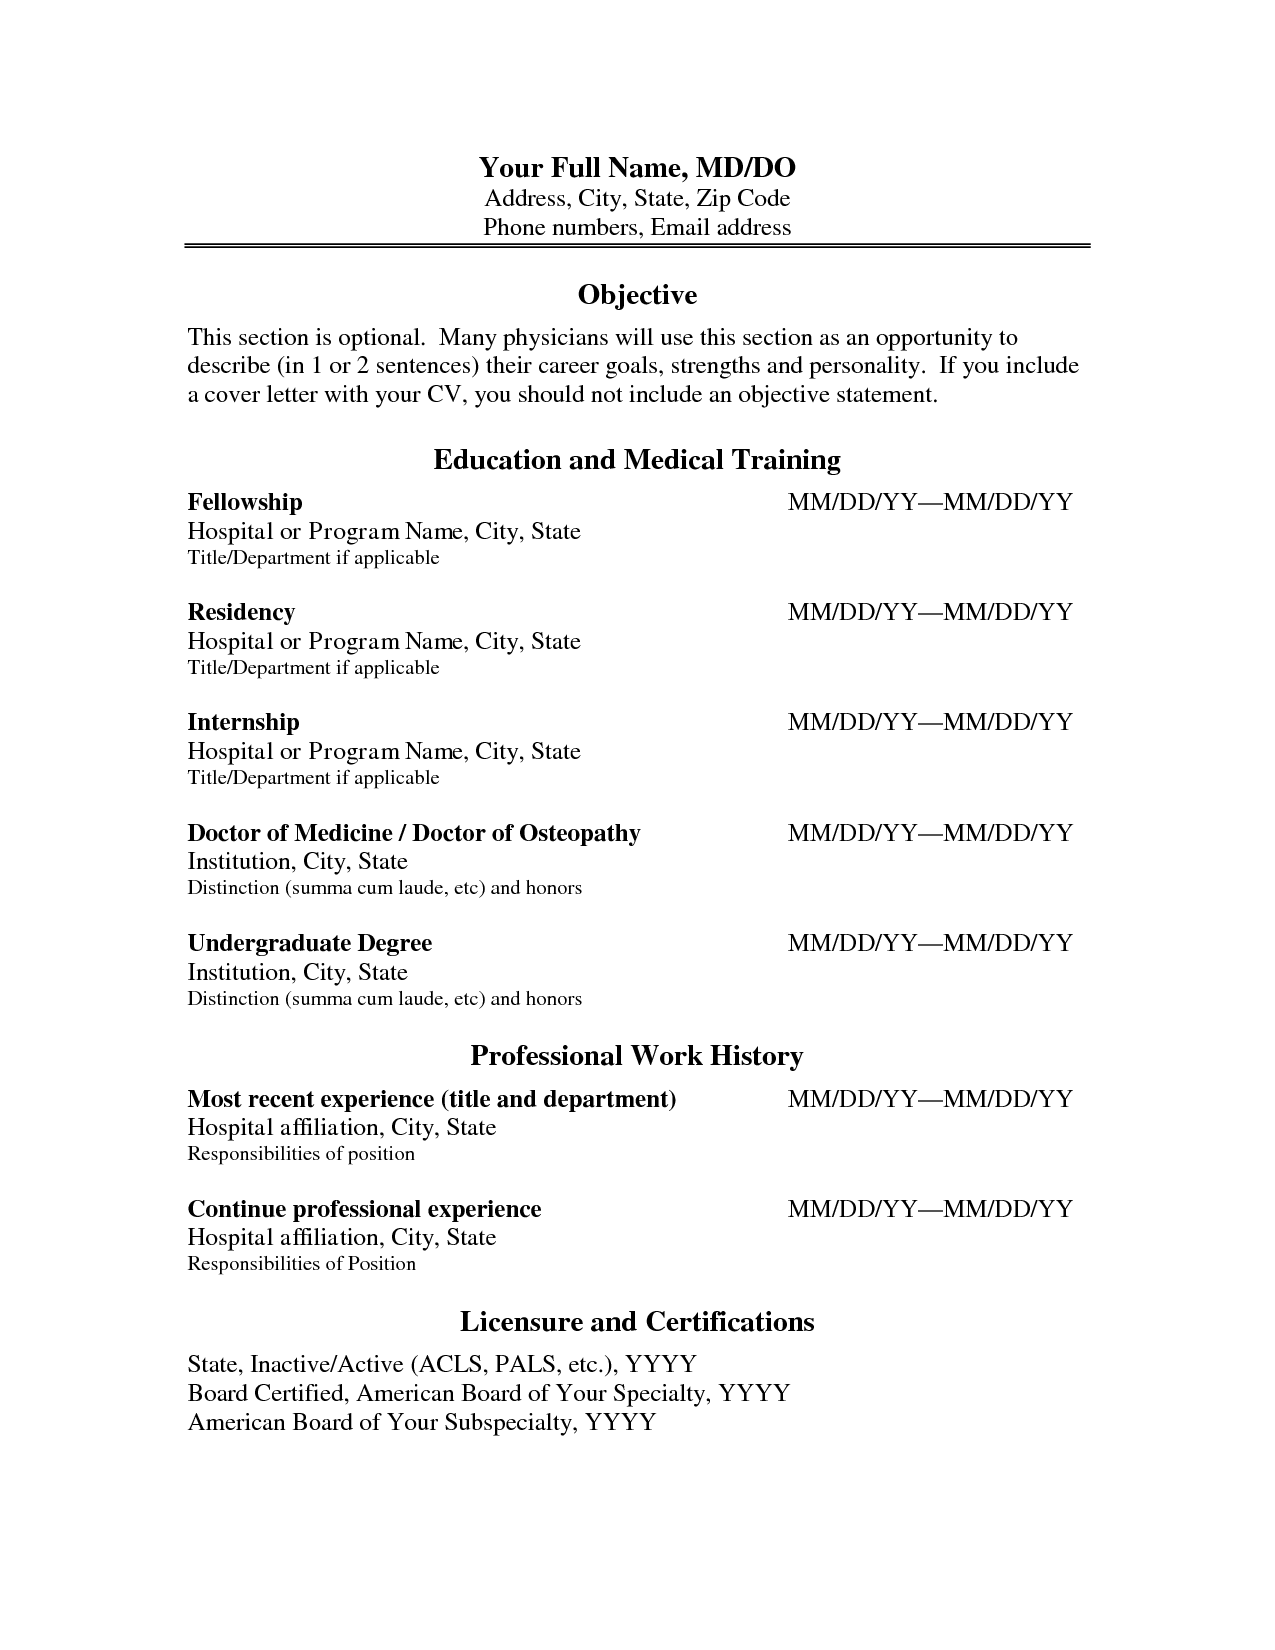 Resume Examples Me Nbspthis Website Is For Sale Nbspresume Examples Resources And Information Cv Template Word Job Resume Examples Good Objective For Resume